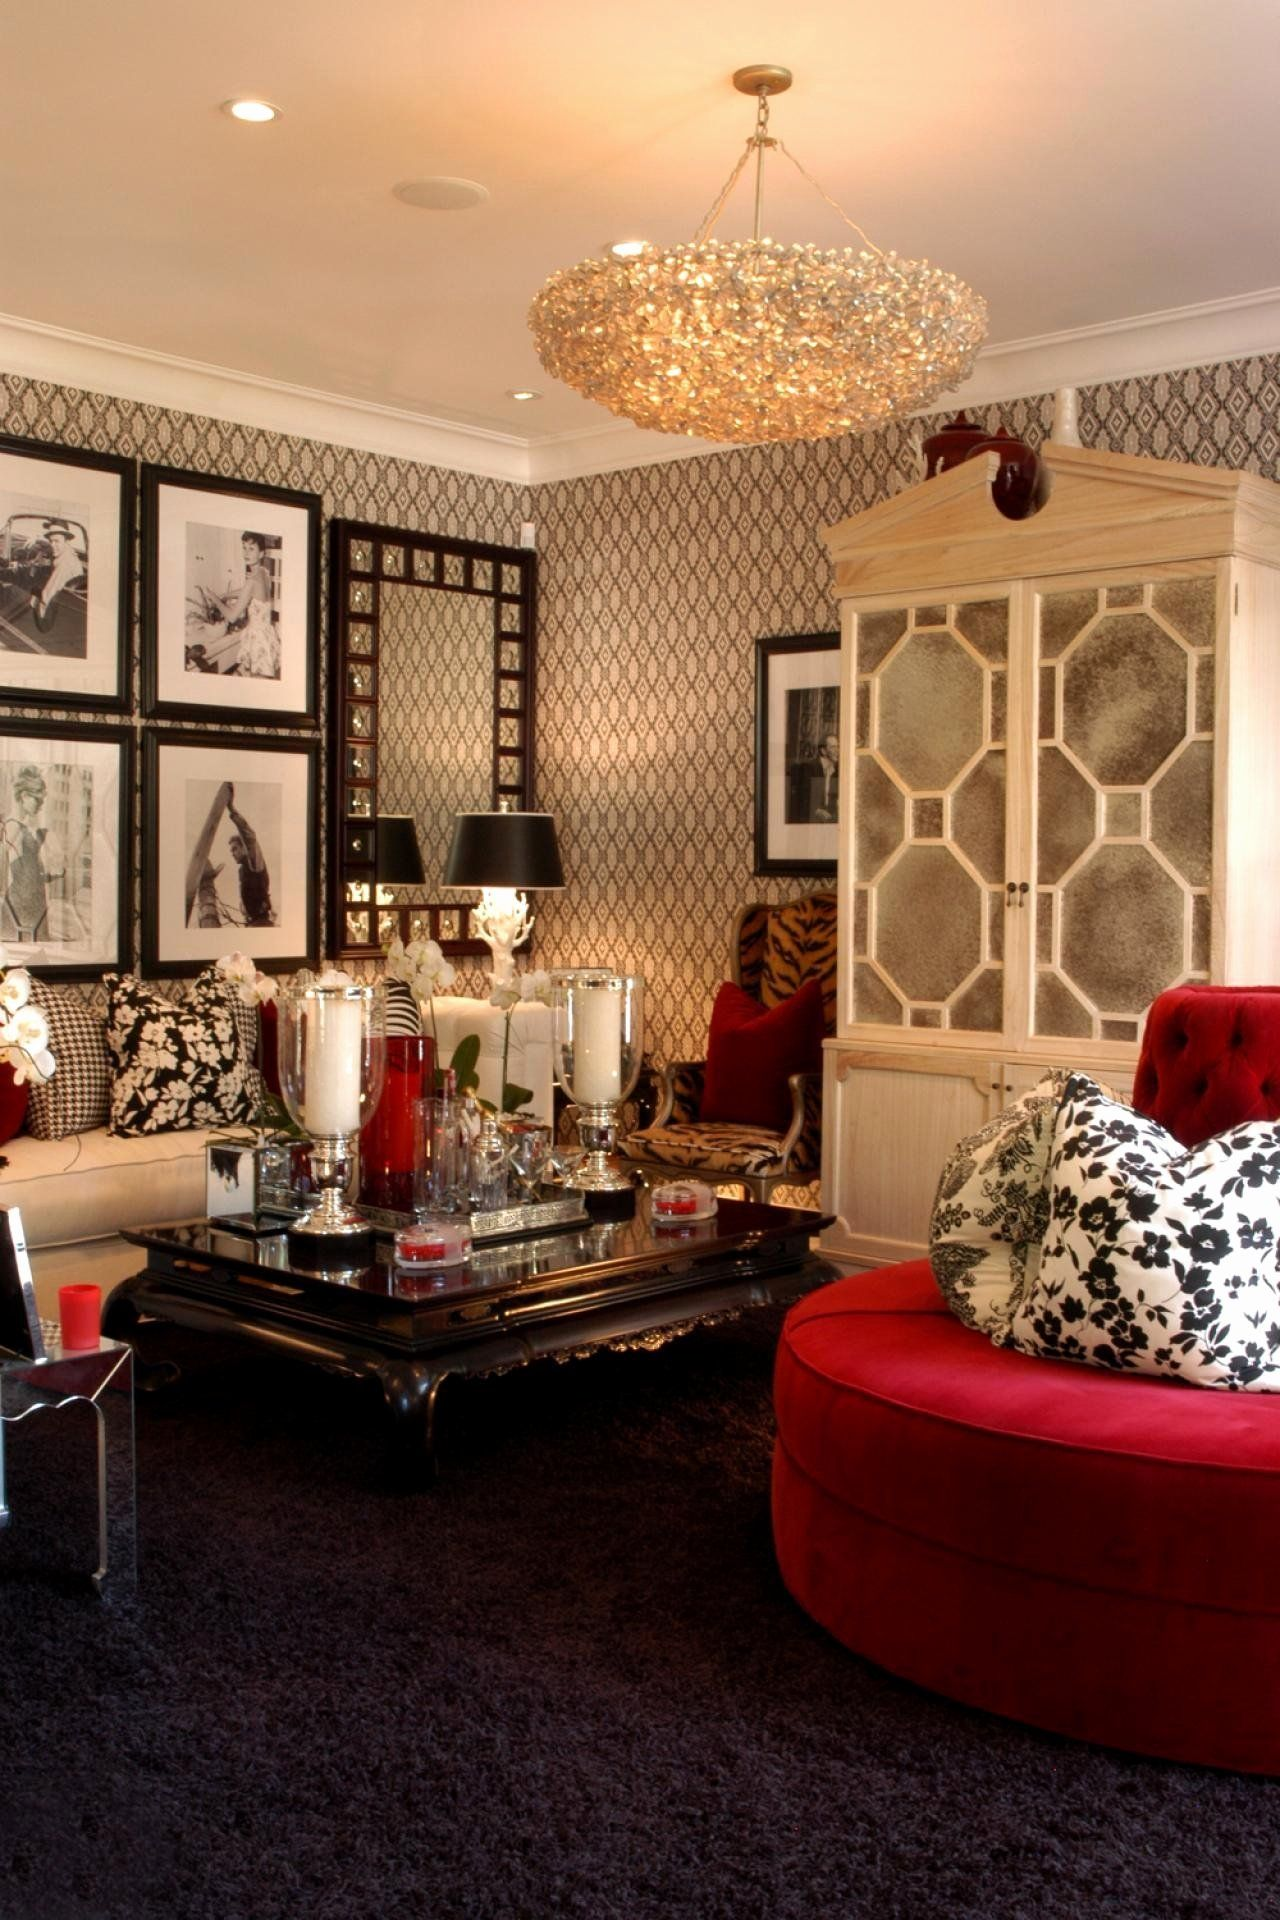 Small guest bedroom Hollywood glamour decor. Glamour